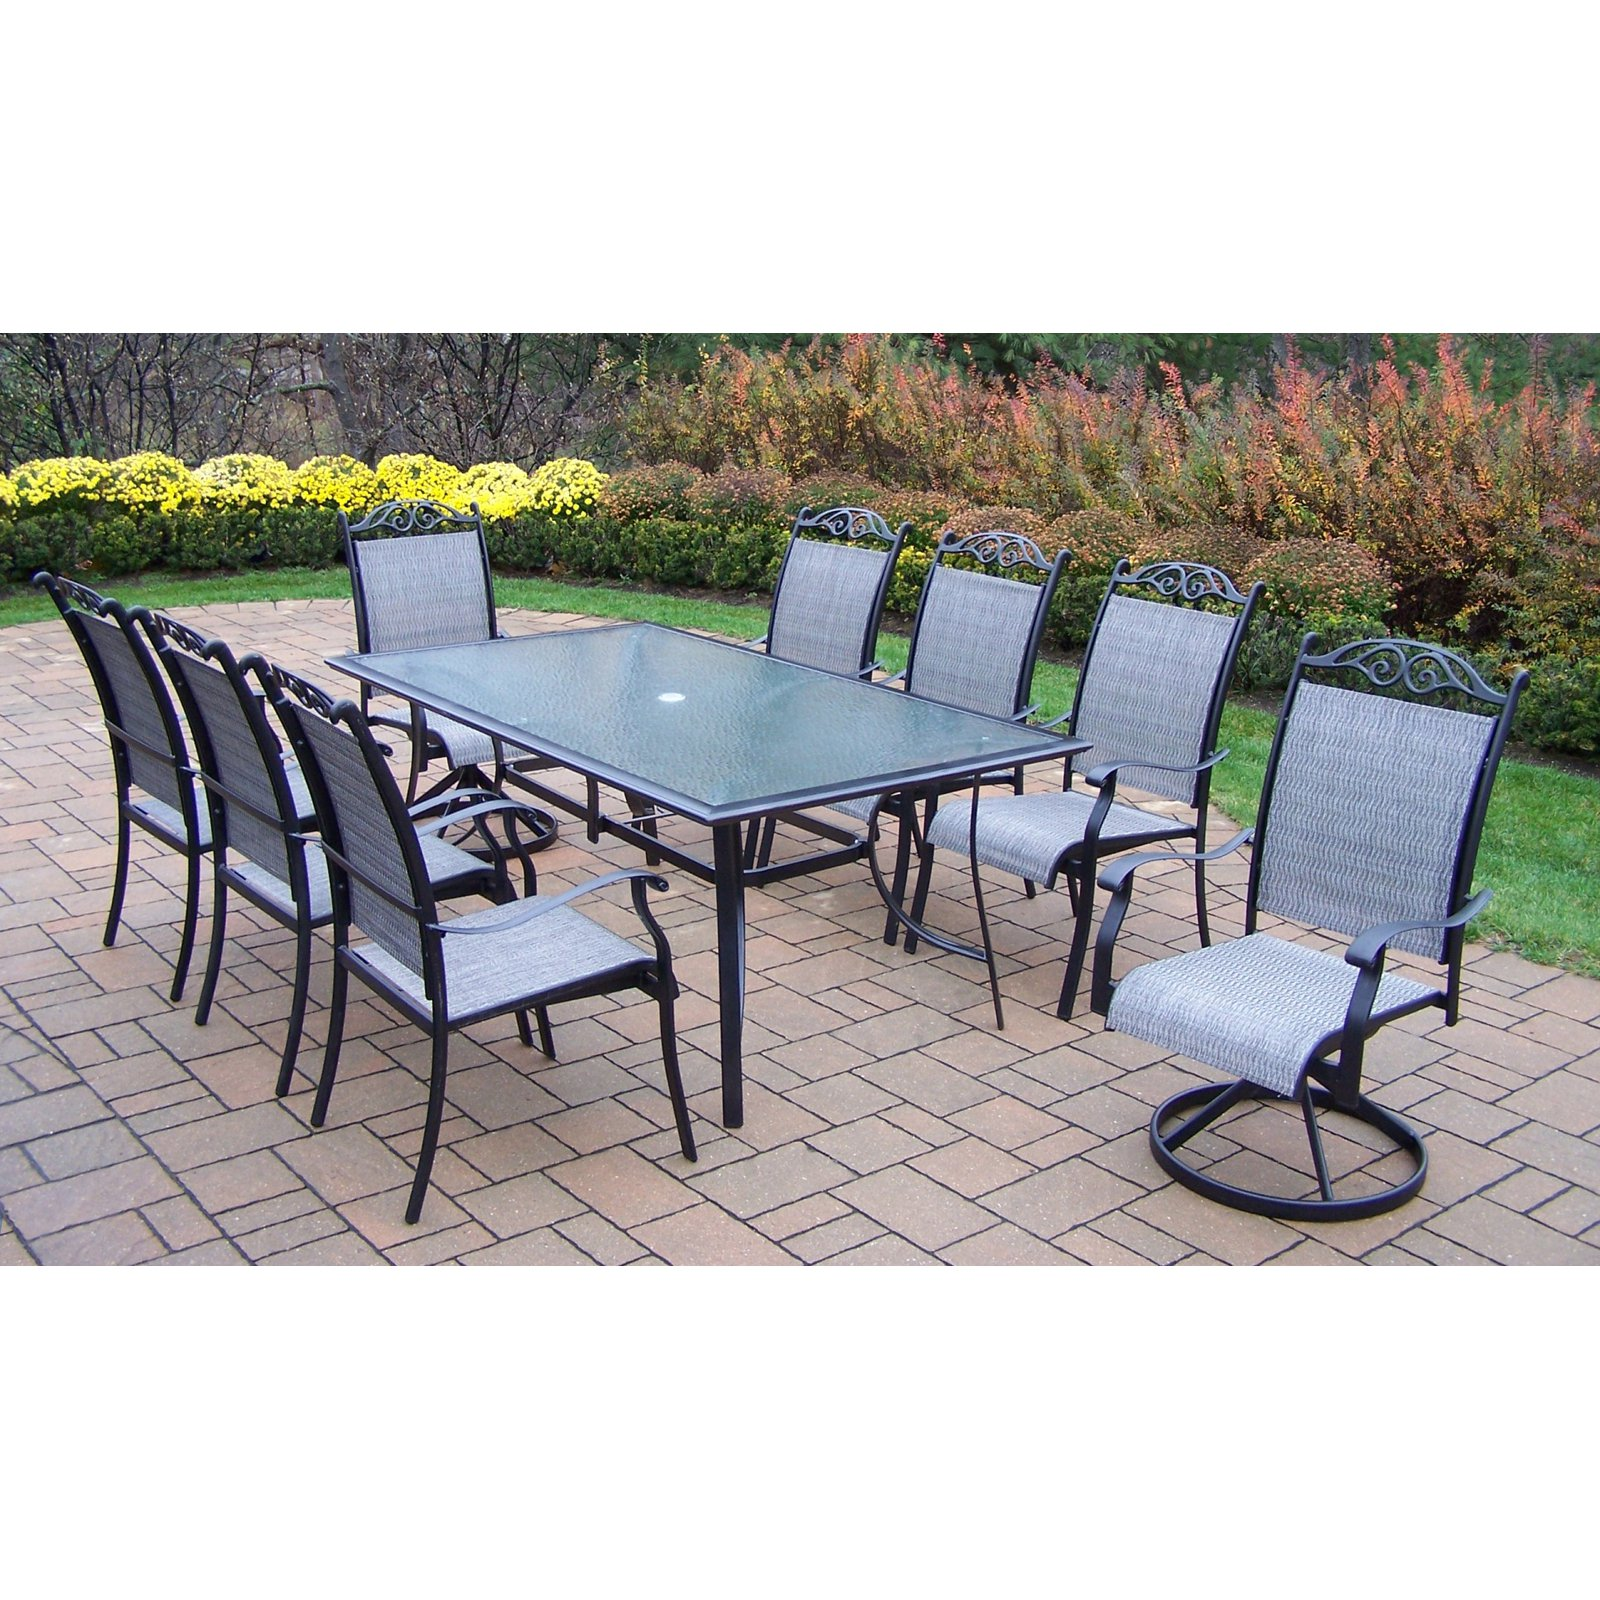 awesome beautiful set chair chairs and metal fresh patio furniture table sling of